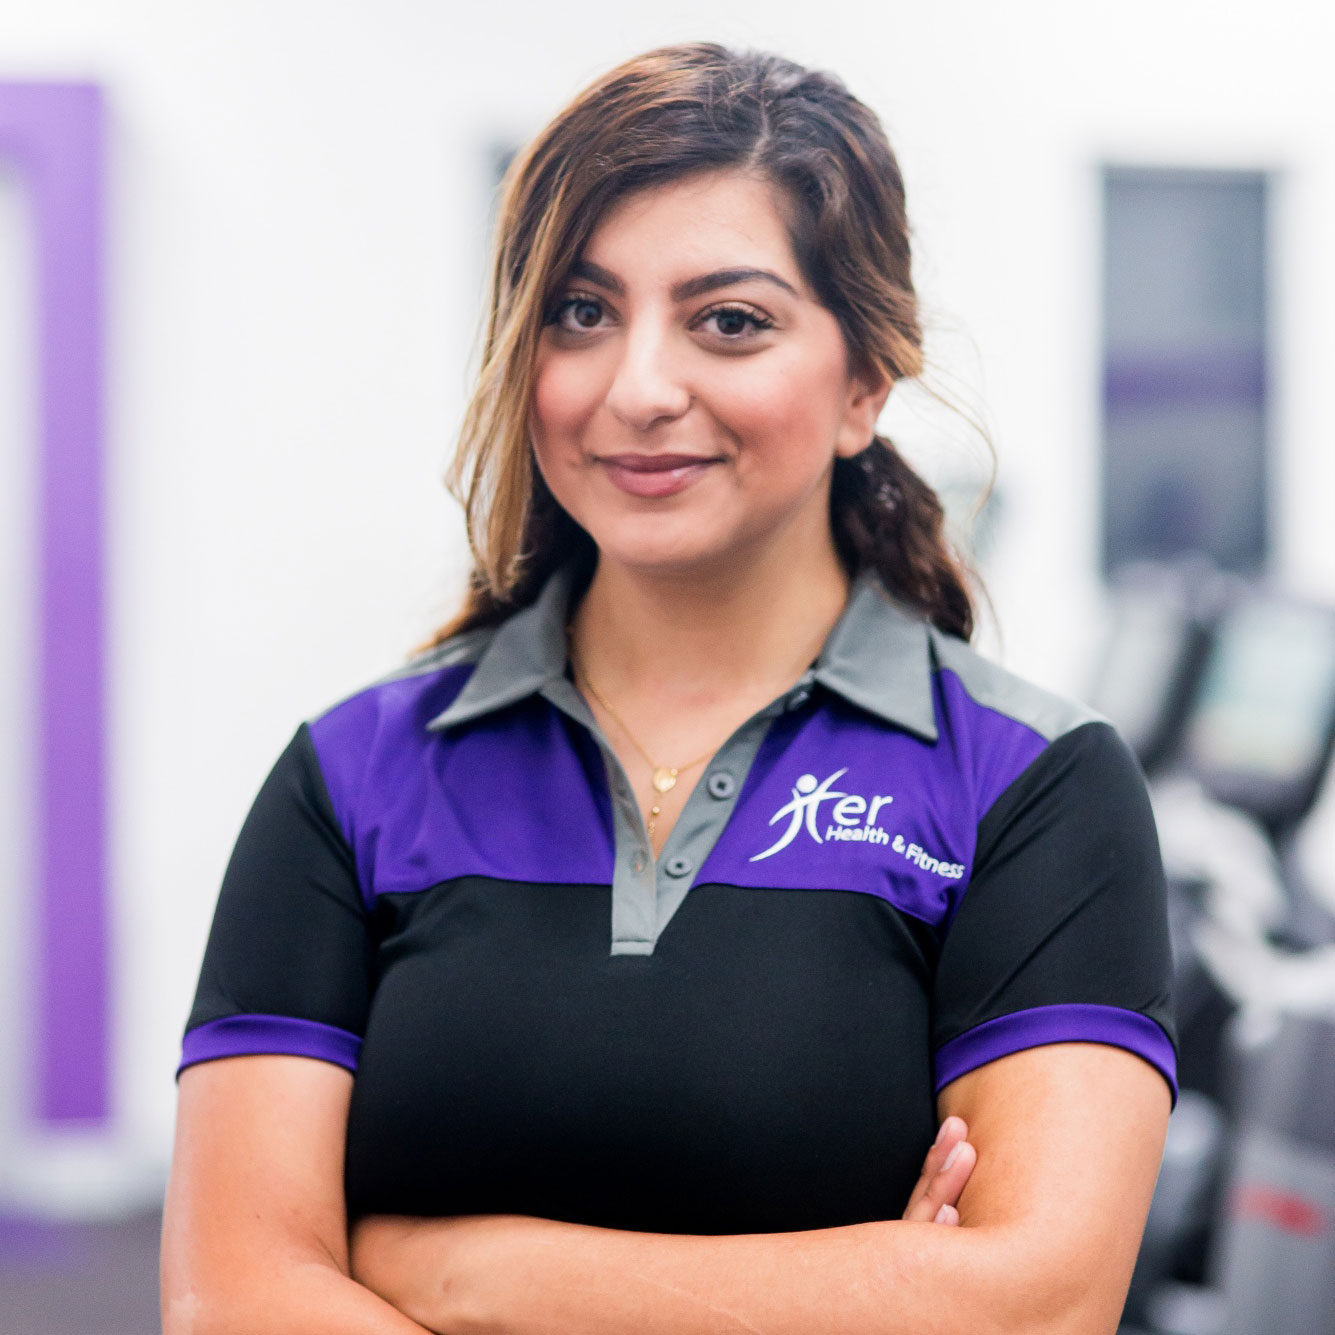 Nicole Milad at Her Health & Fitness